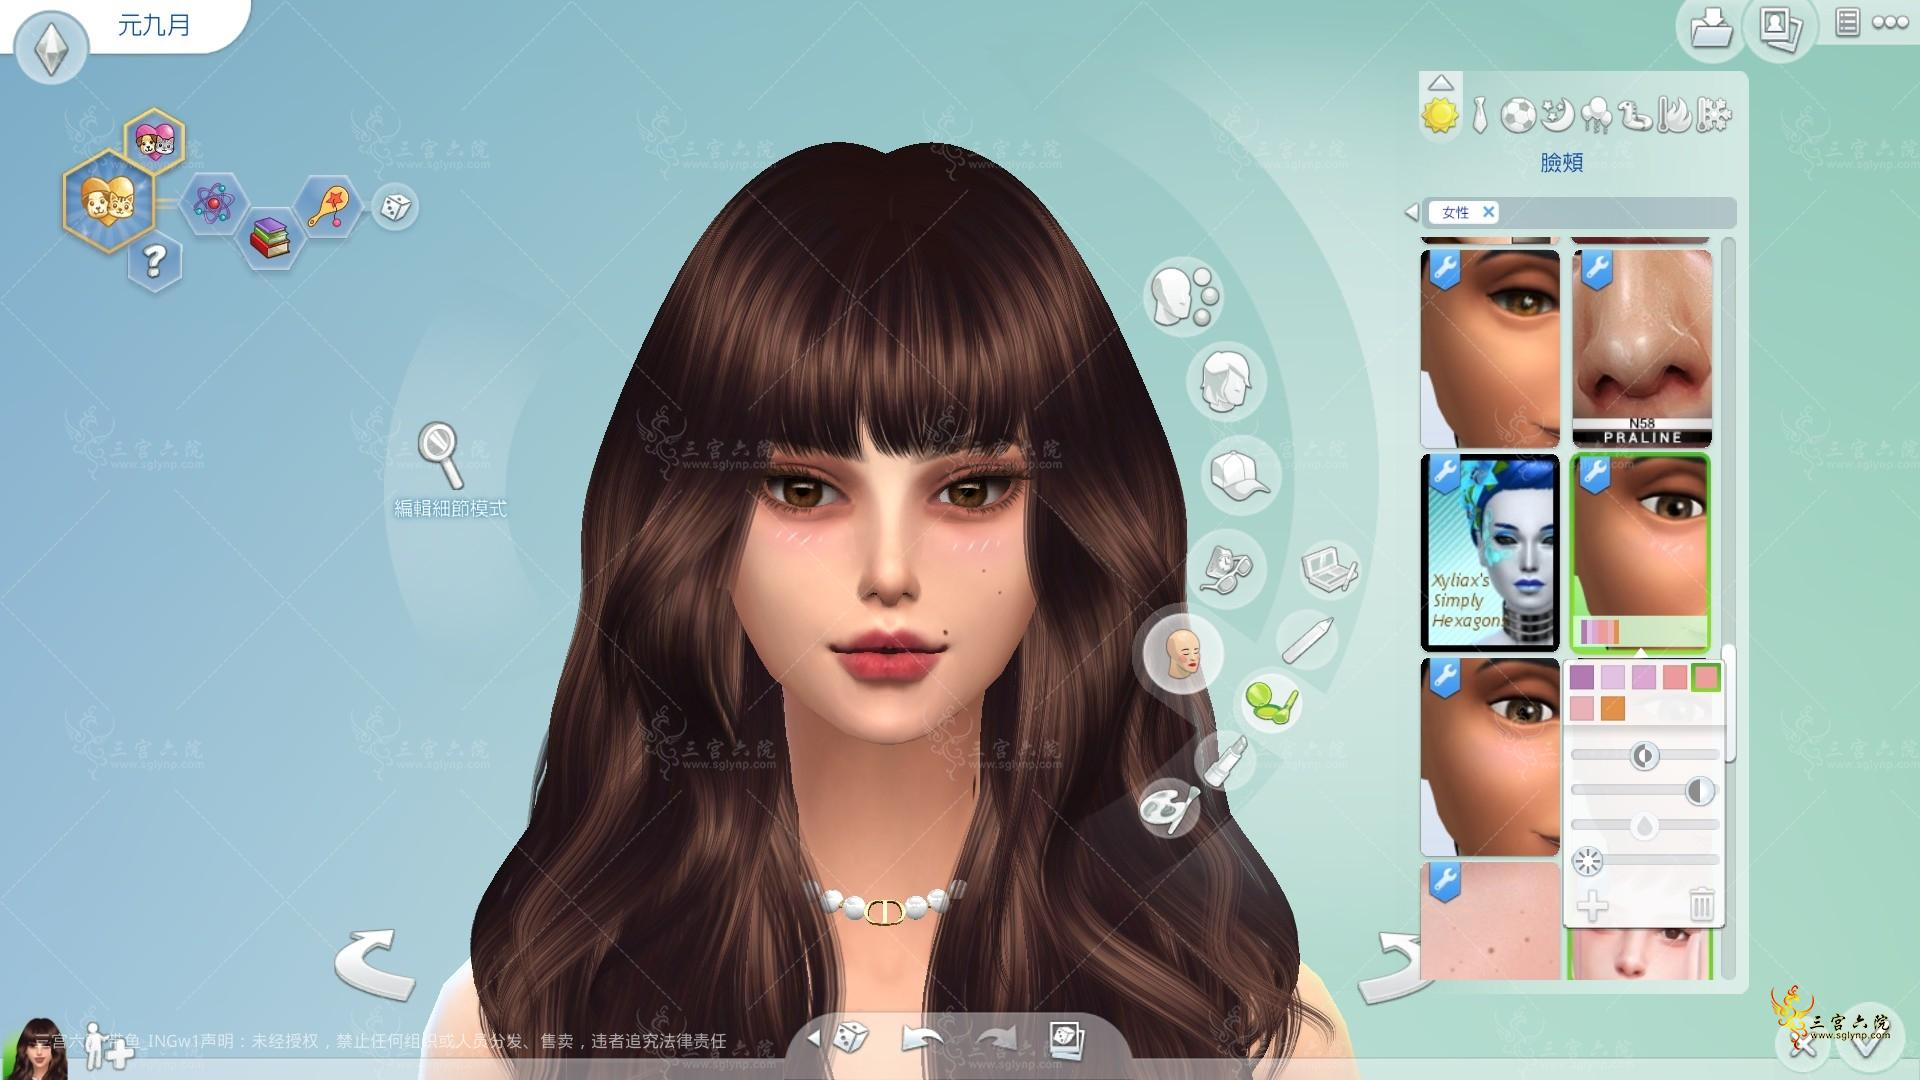 The Sims 4 2021_8_28 20_25_18.png